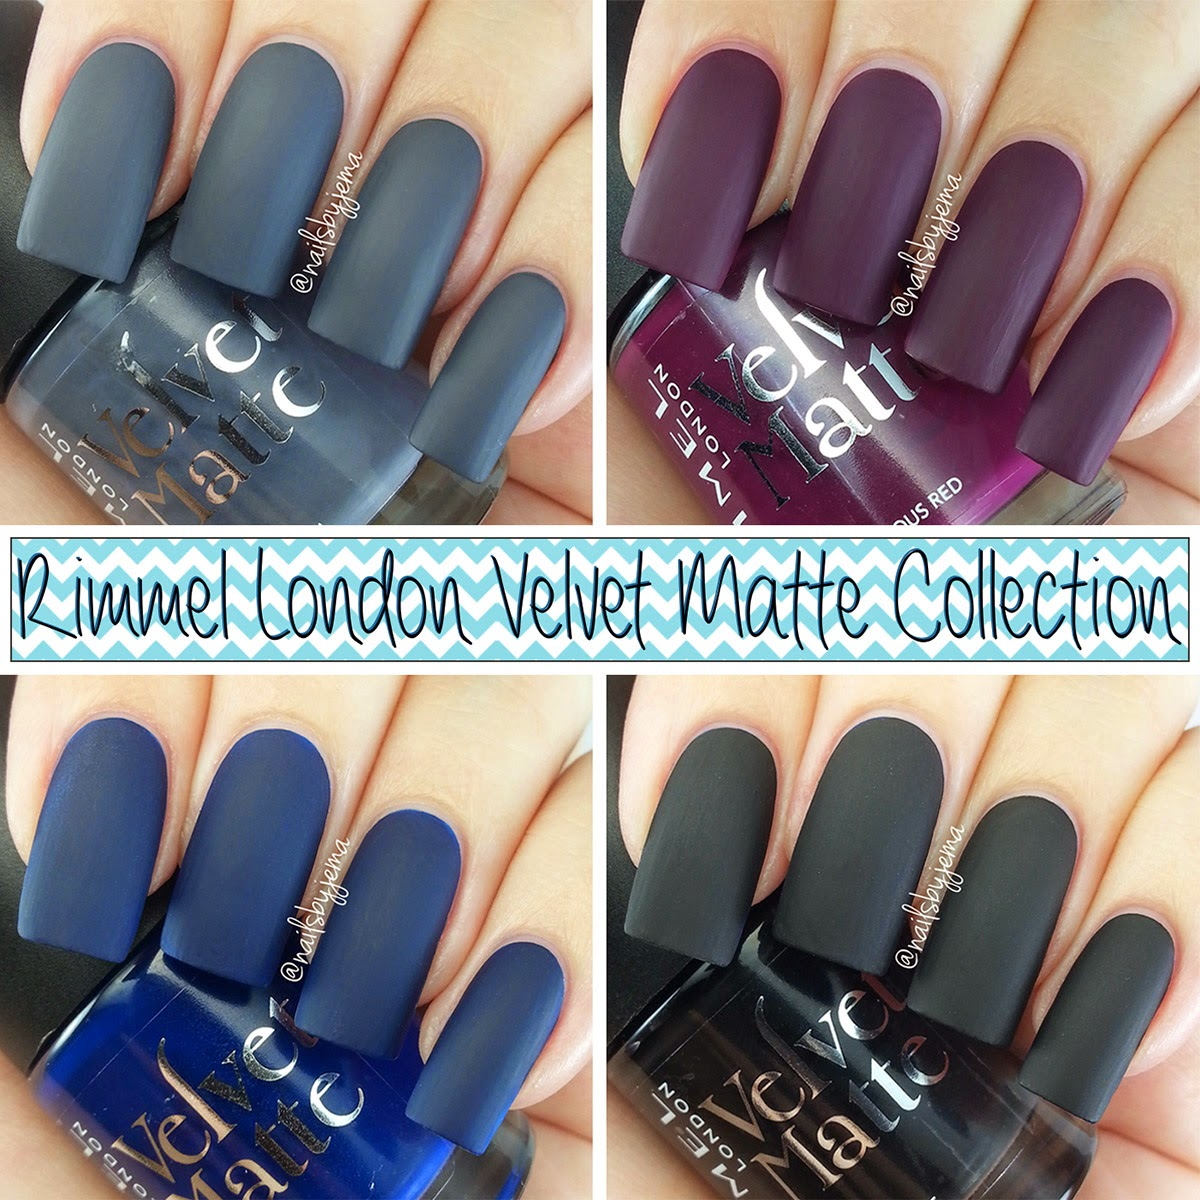 Nails By Jema: Rimmel London Velvet Matte Collection Swatches & Review!